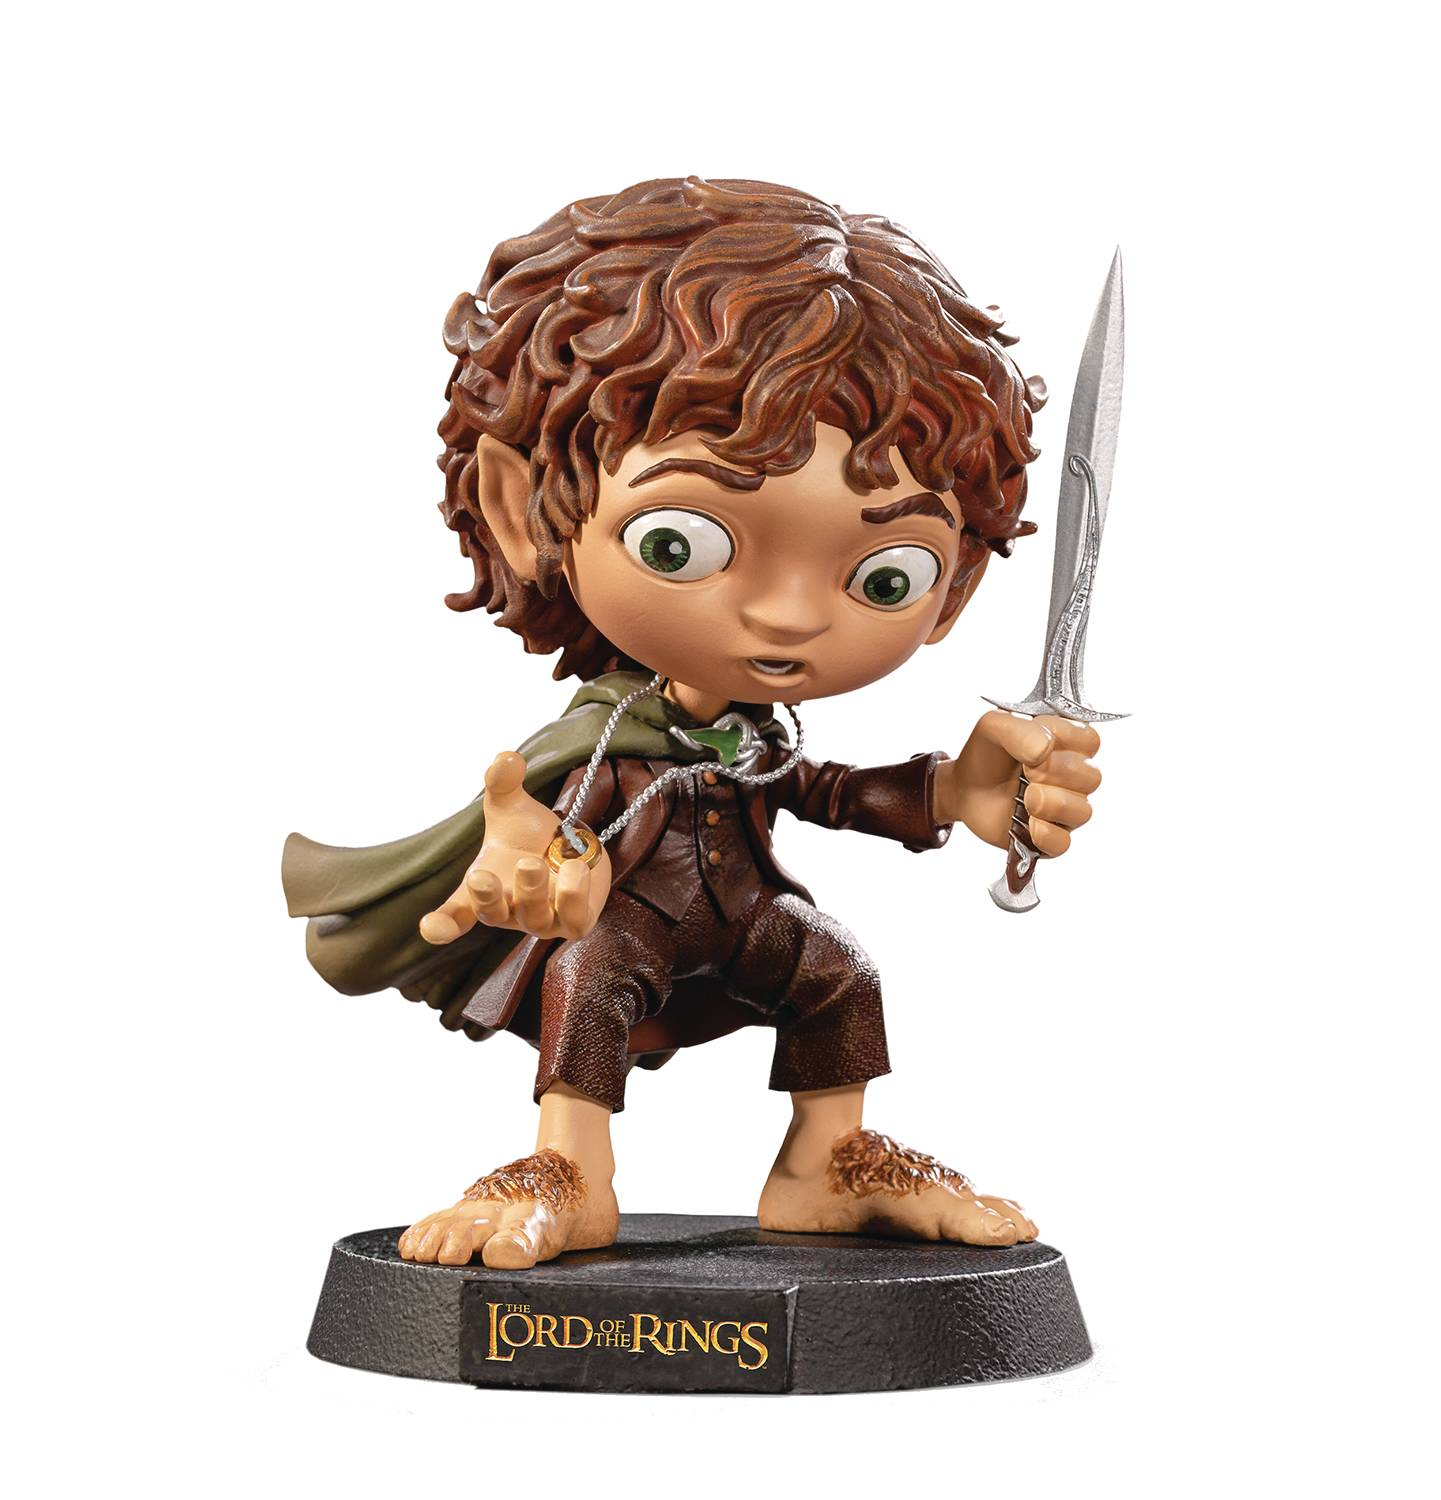 MINICO HEROES LORD OF THE RINGS FRODO VINYL STATUE